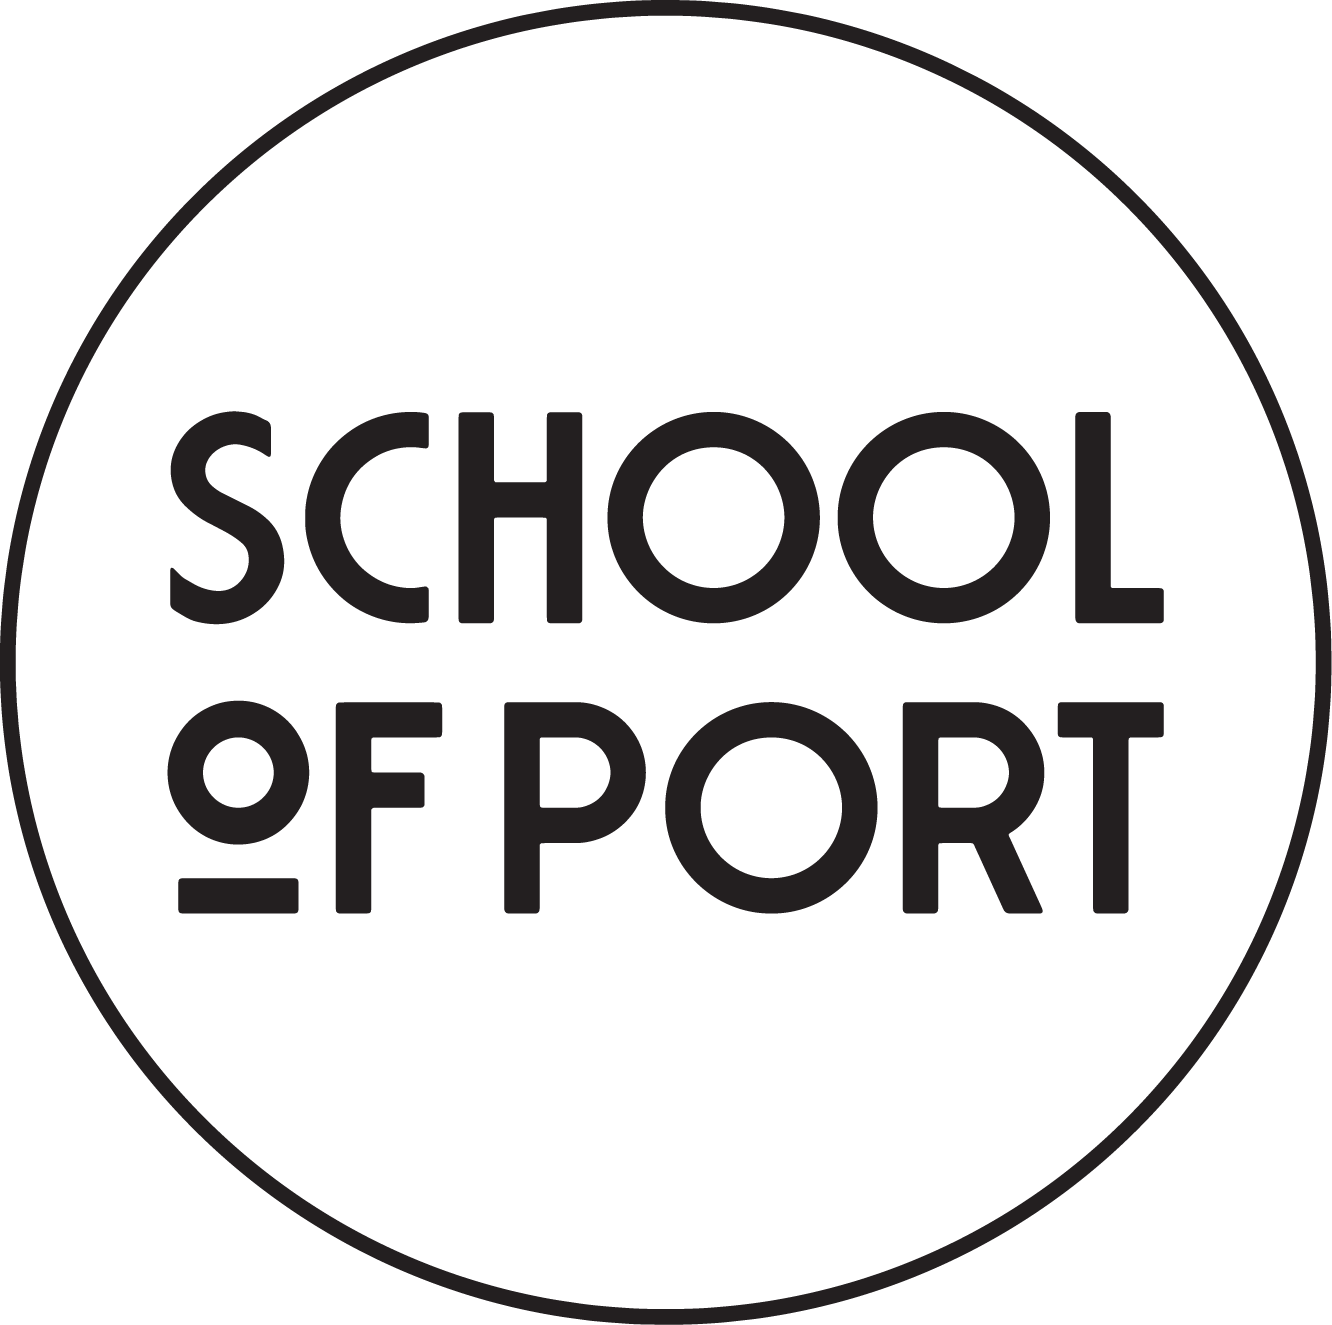 School of Port